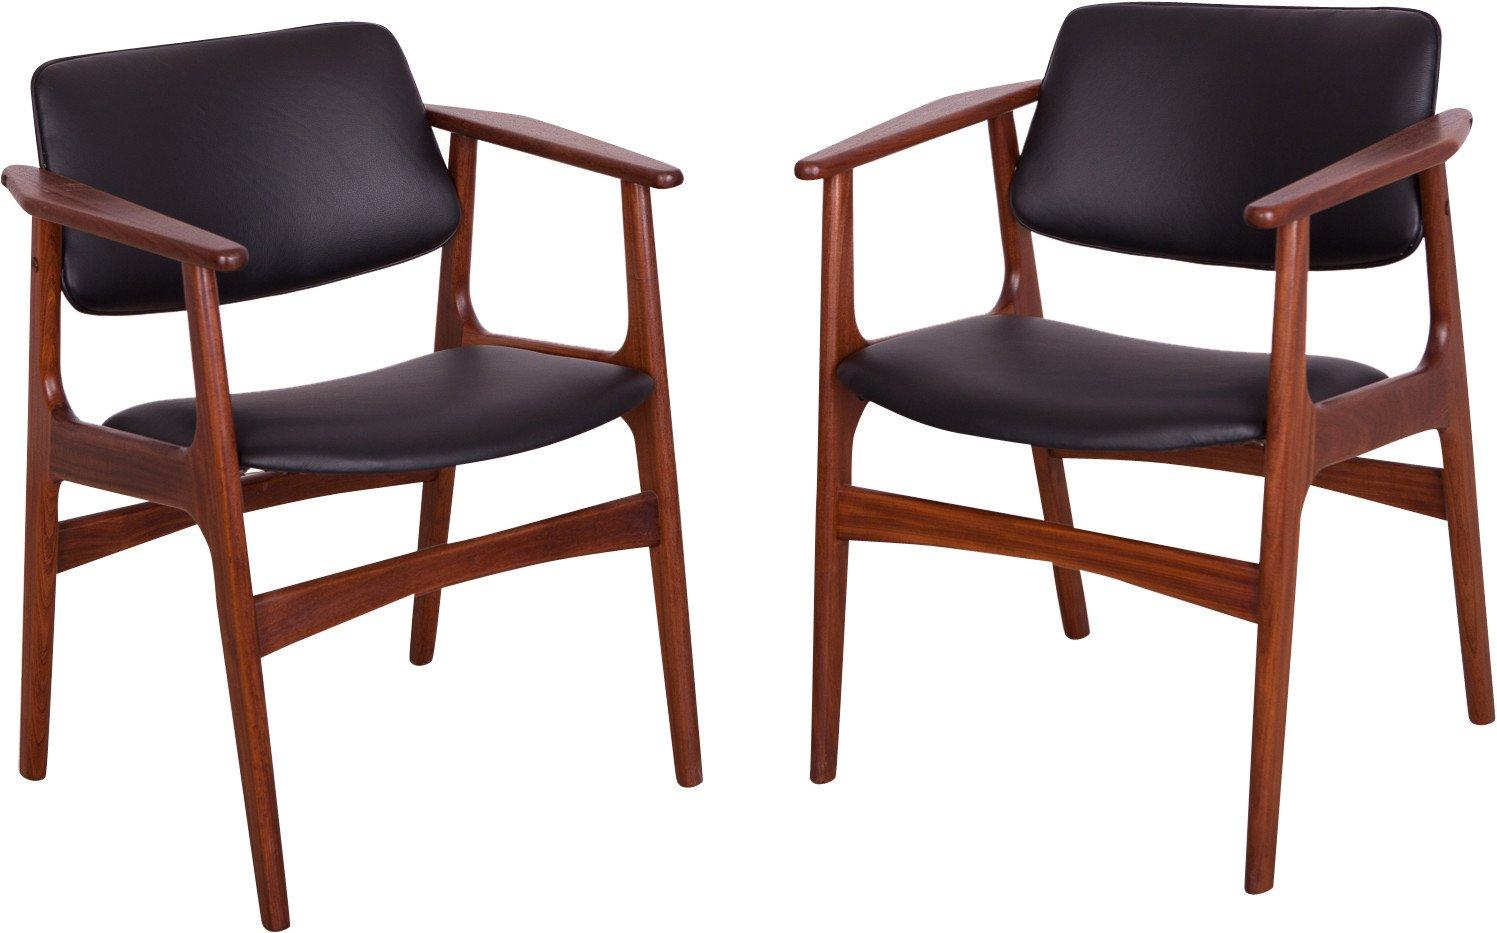 Pair of Armchairs by A. Vodder, Denmark, 1960s